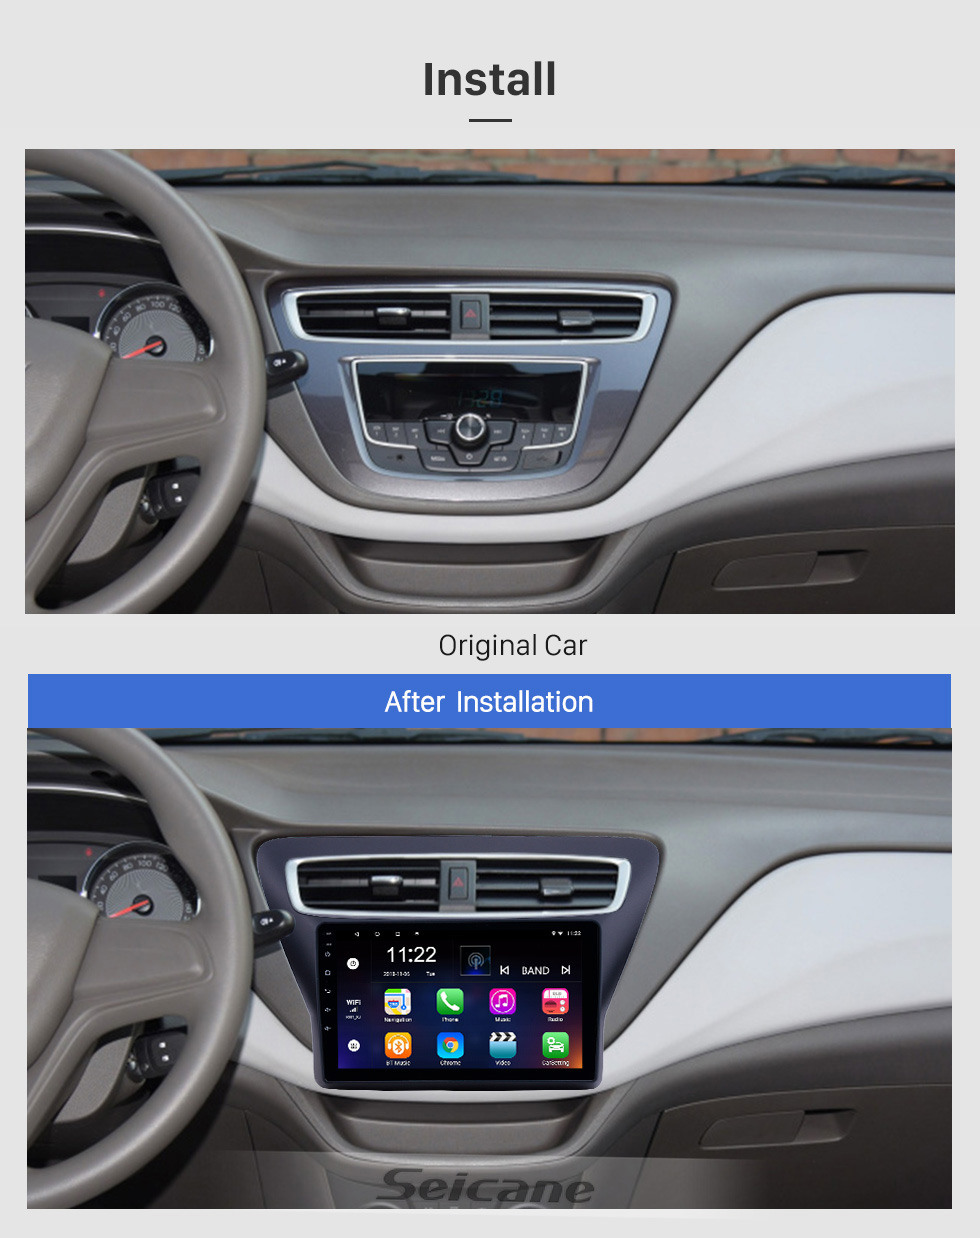 Seicane 2016-2018 Chevy Chevrolet Lova RV Android 10.0 HD Touchscreen 9 inch GPS Navigation Radio with Bluetooth support Carplay SWC